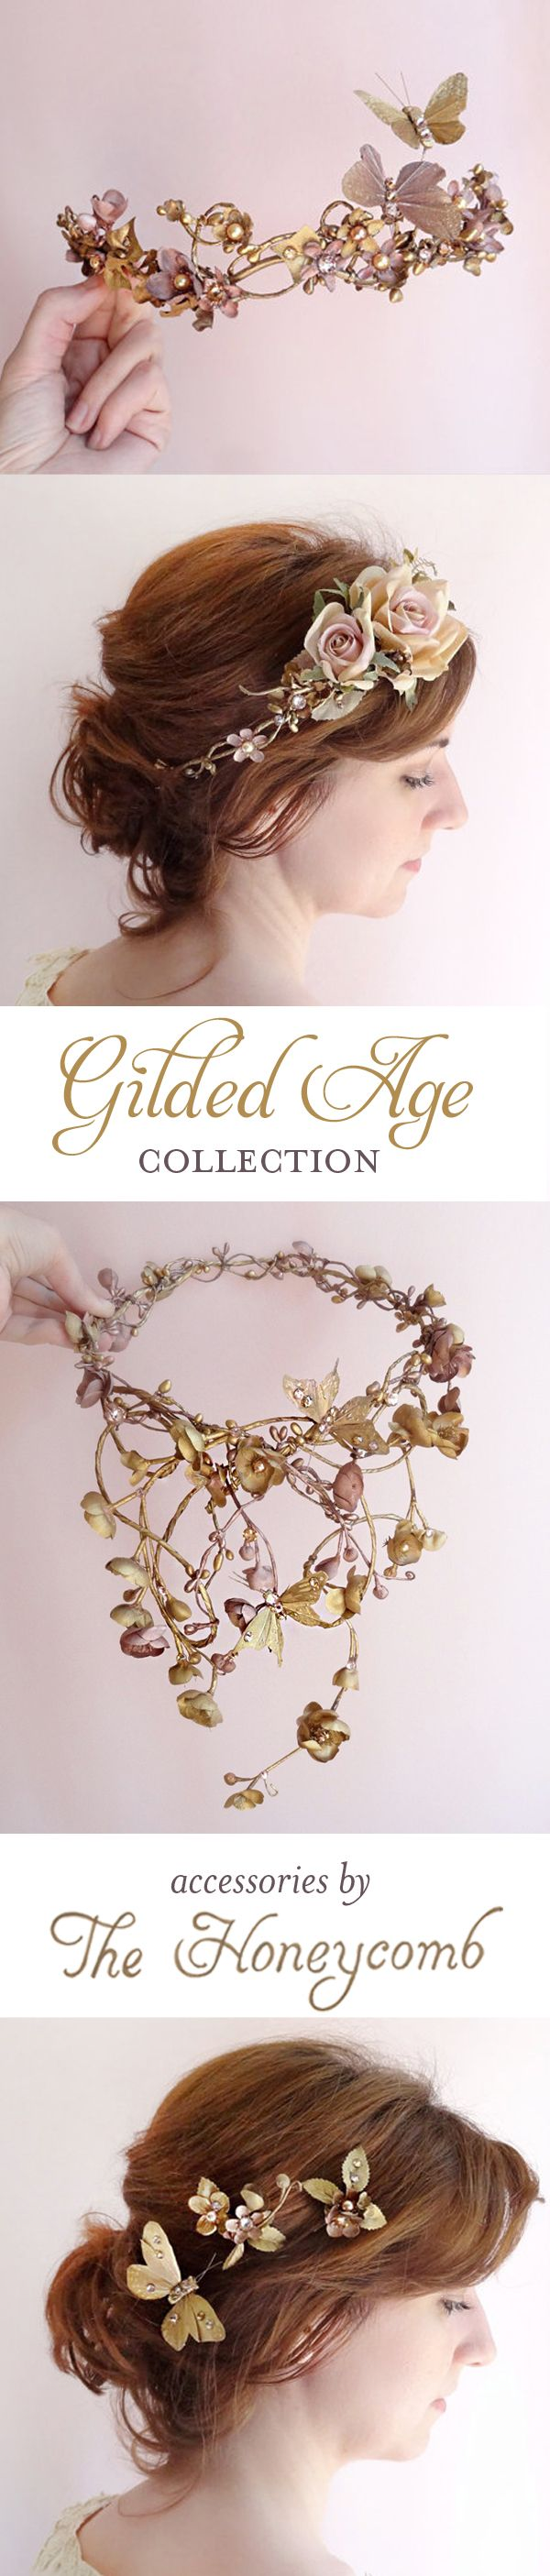 Butterfly hair accessories for weddings uk - Find This Pin And More On Future Wedding Bronze Metallic Hair Accessories With Gilded Butterflies